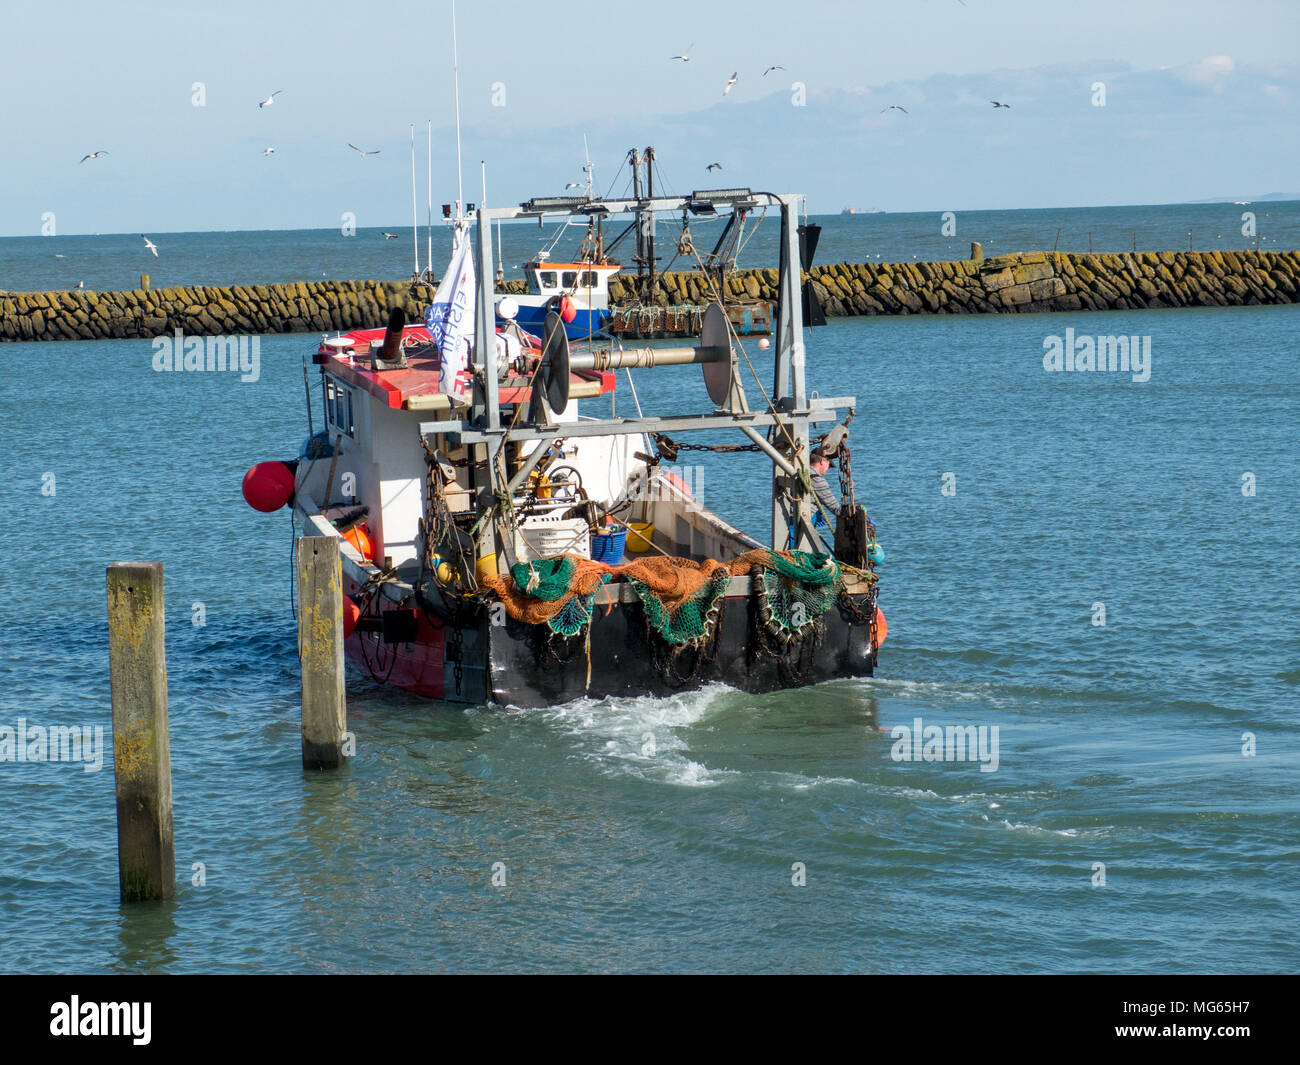 Trawler just back from the catch of the day - Stock Image